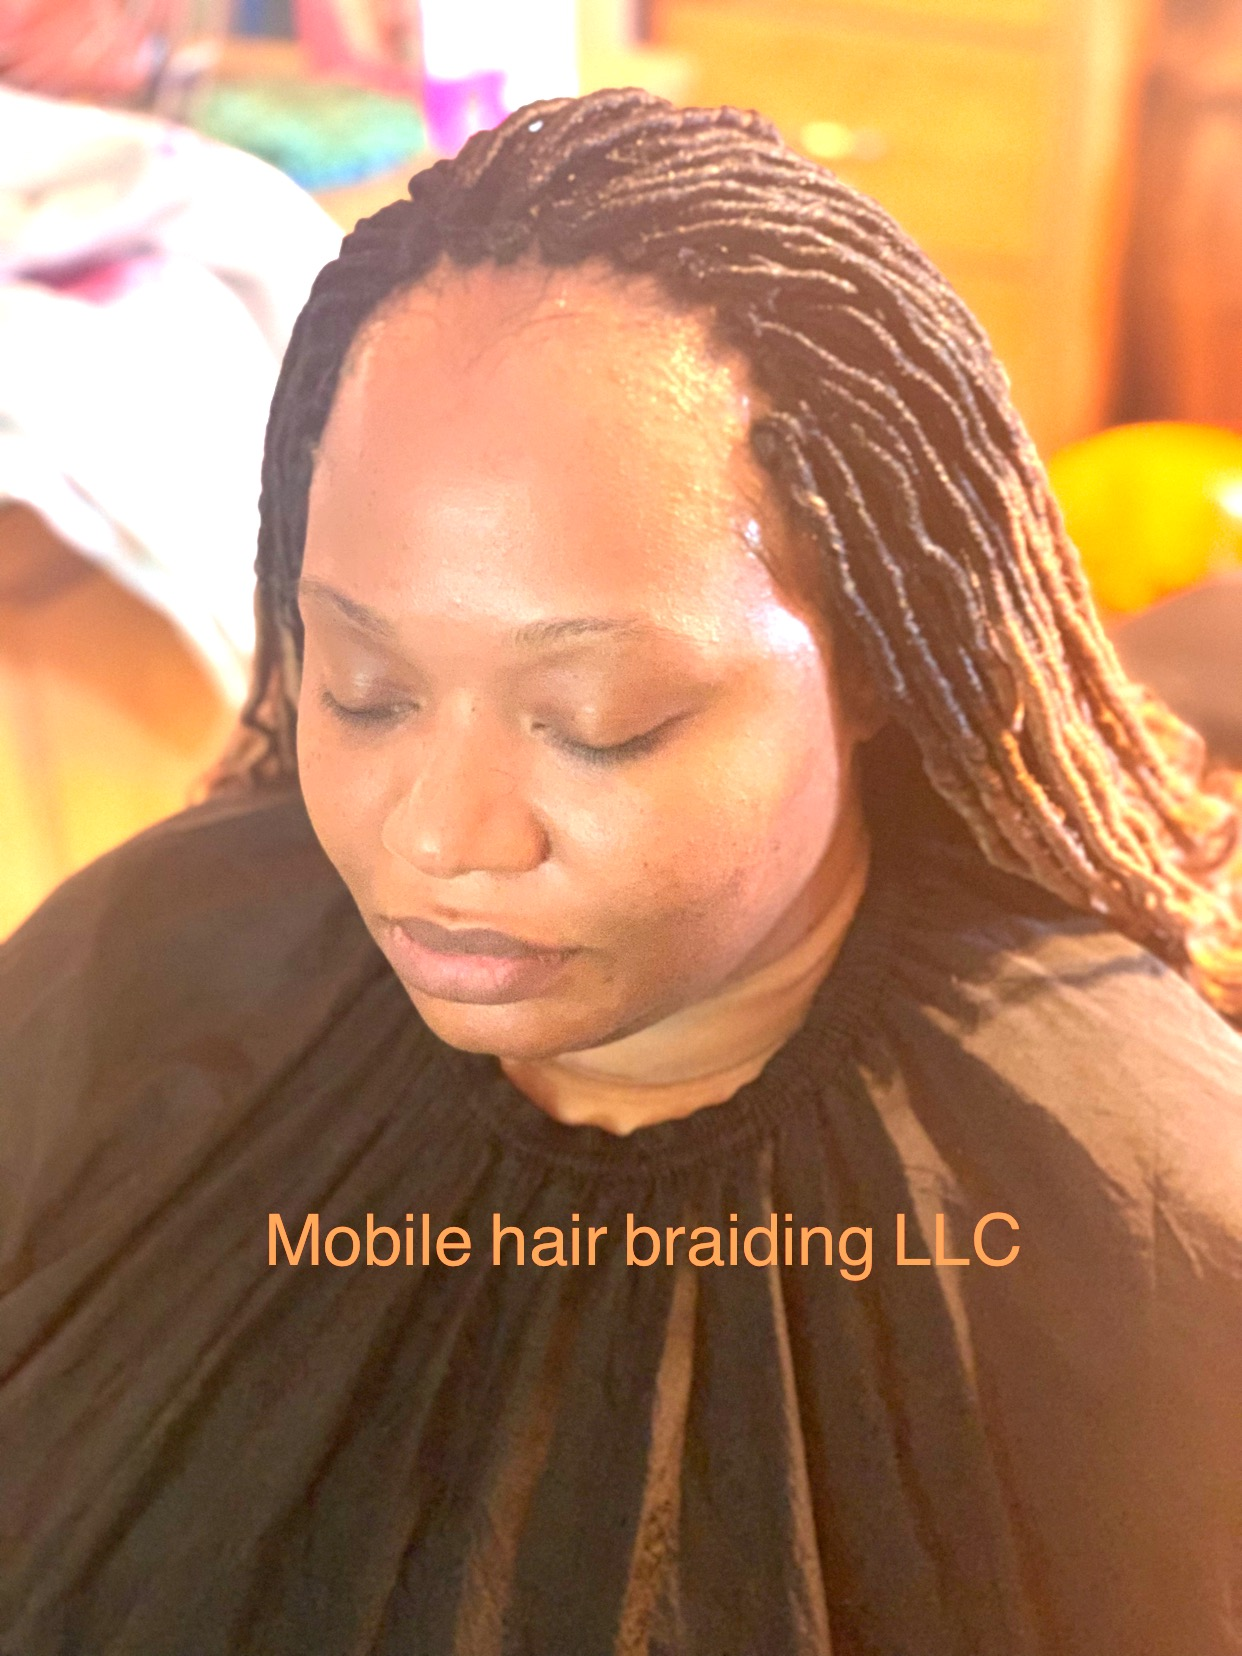 Crochet braids completed in district heights, MD